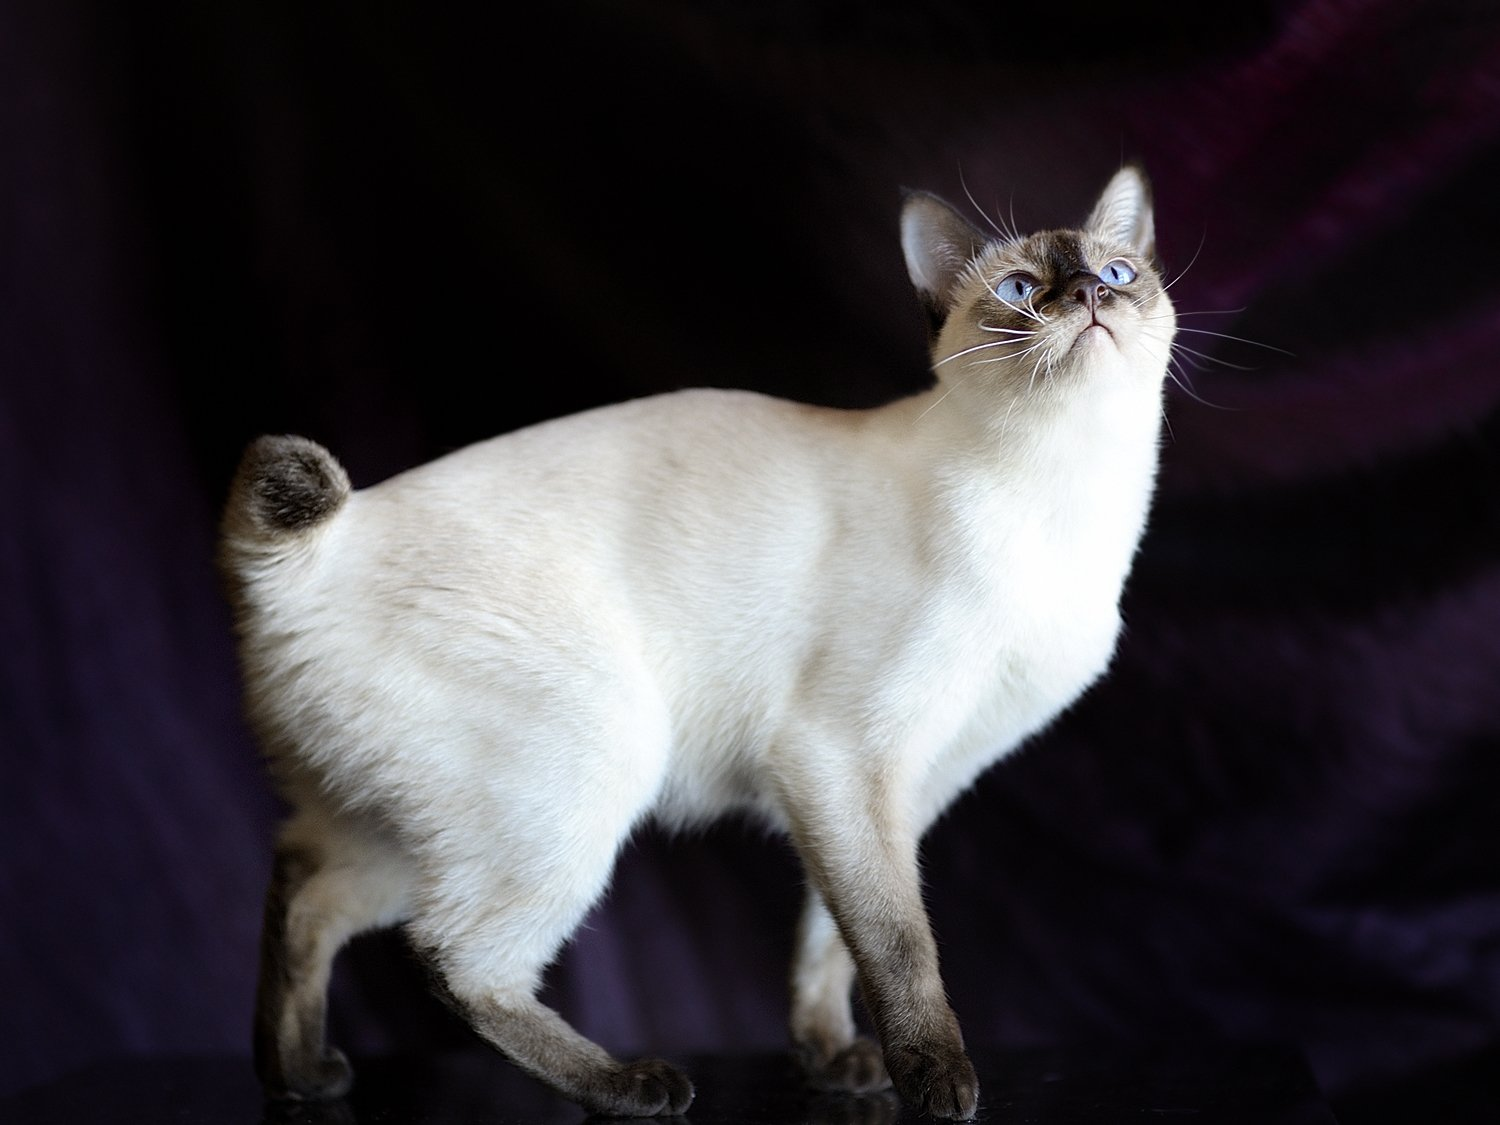 The Mekong Bobtail cat is a loving and affectionate, dog-like cat original from Thailand but developed in Russia. They are medium-sized and make great pets.